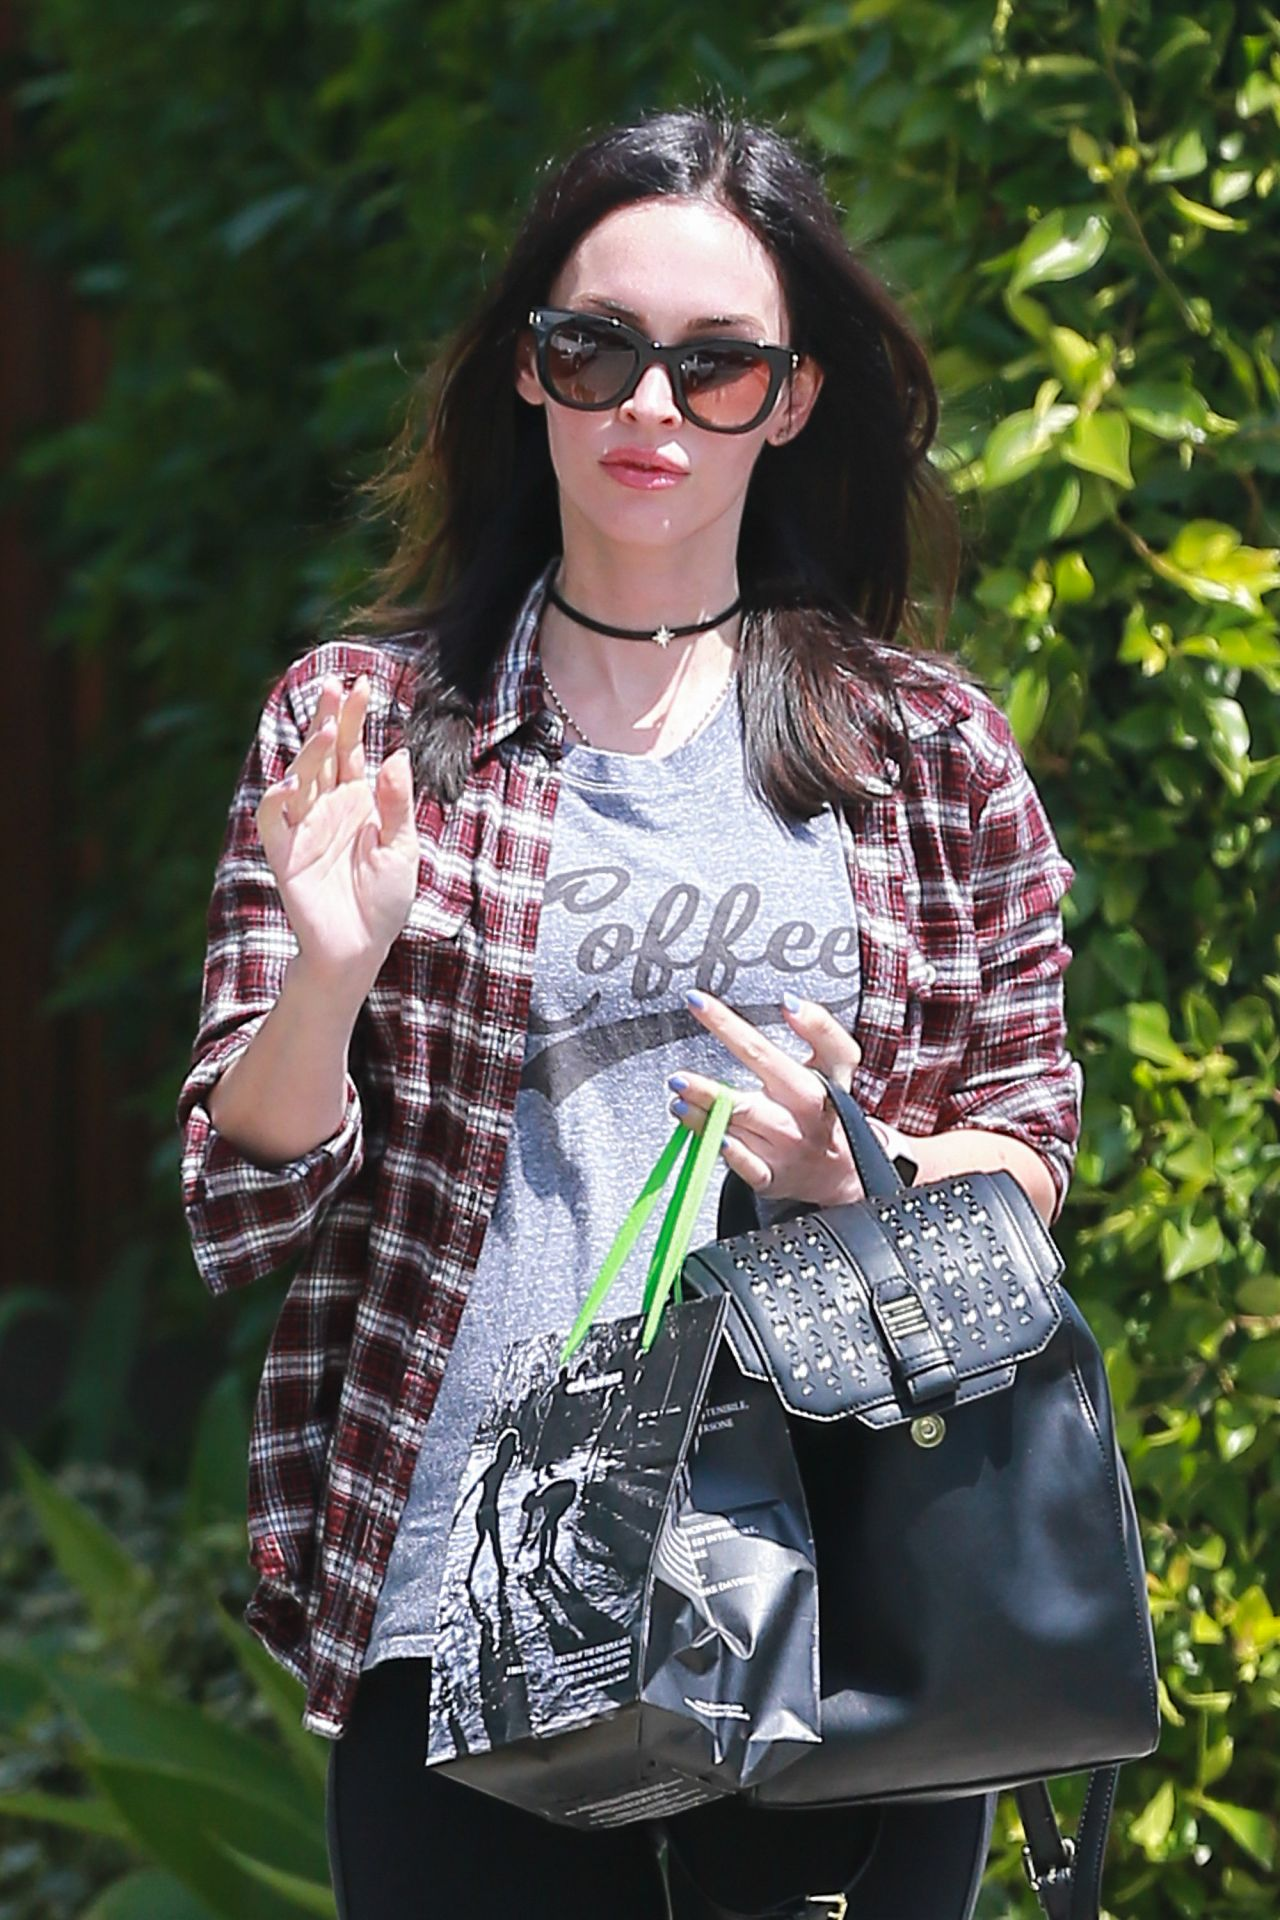 megan fox street style leaving the andy lecompte salon